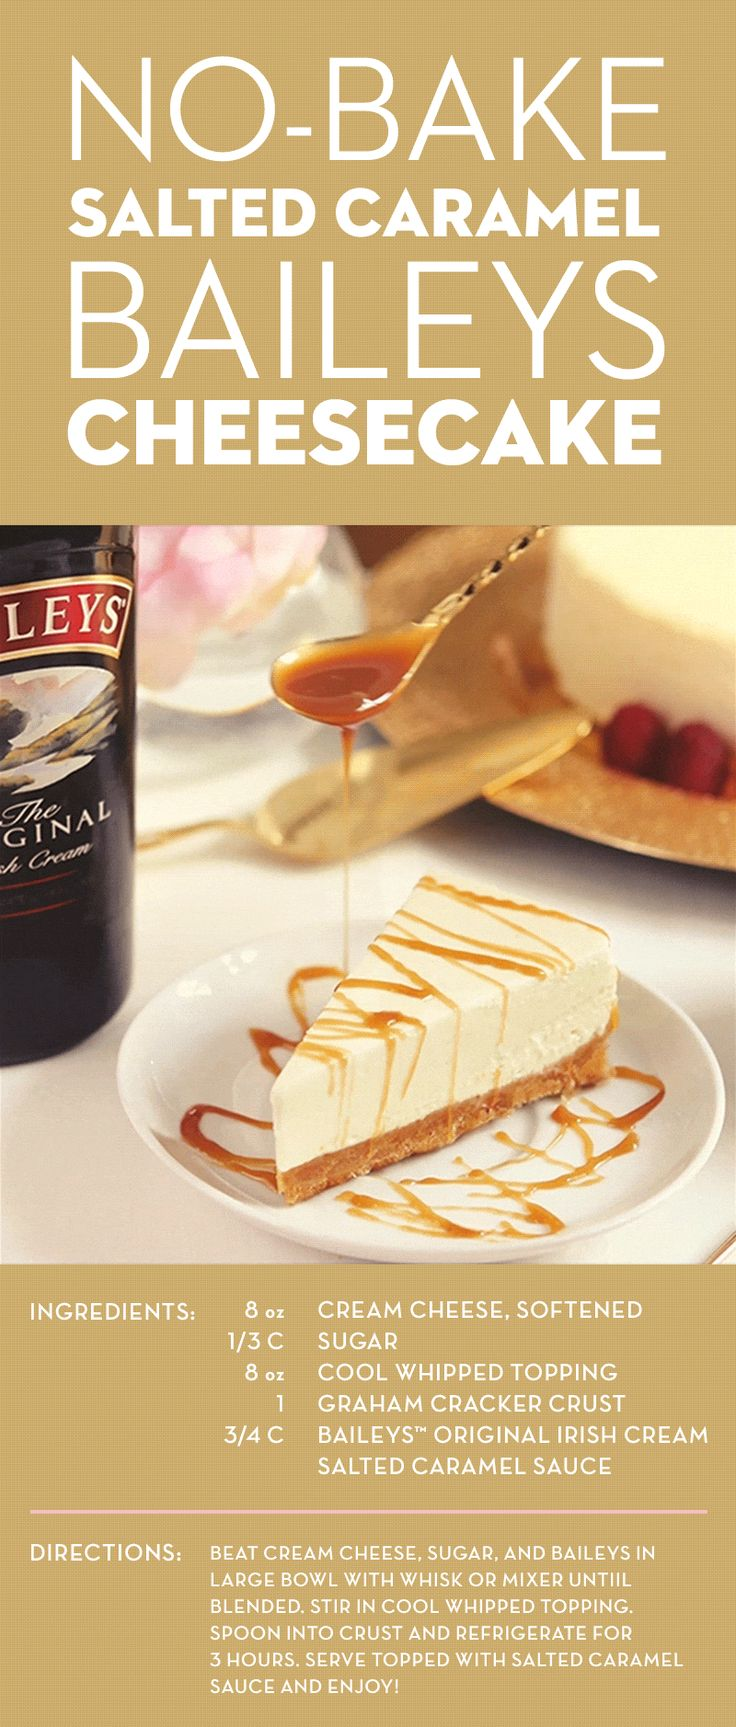 This no-bake, salted caramel-topped Baileys cheesecake recipe is everything you've dreamed of. A touch of sweet Baileys complements the salted caramel perfectly, while the cool whipped topping makes the cheesecake extra fluffy. Don't worry, this decadent dessert is super easy to prepare, so you'll have more time to indulge.